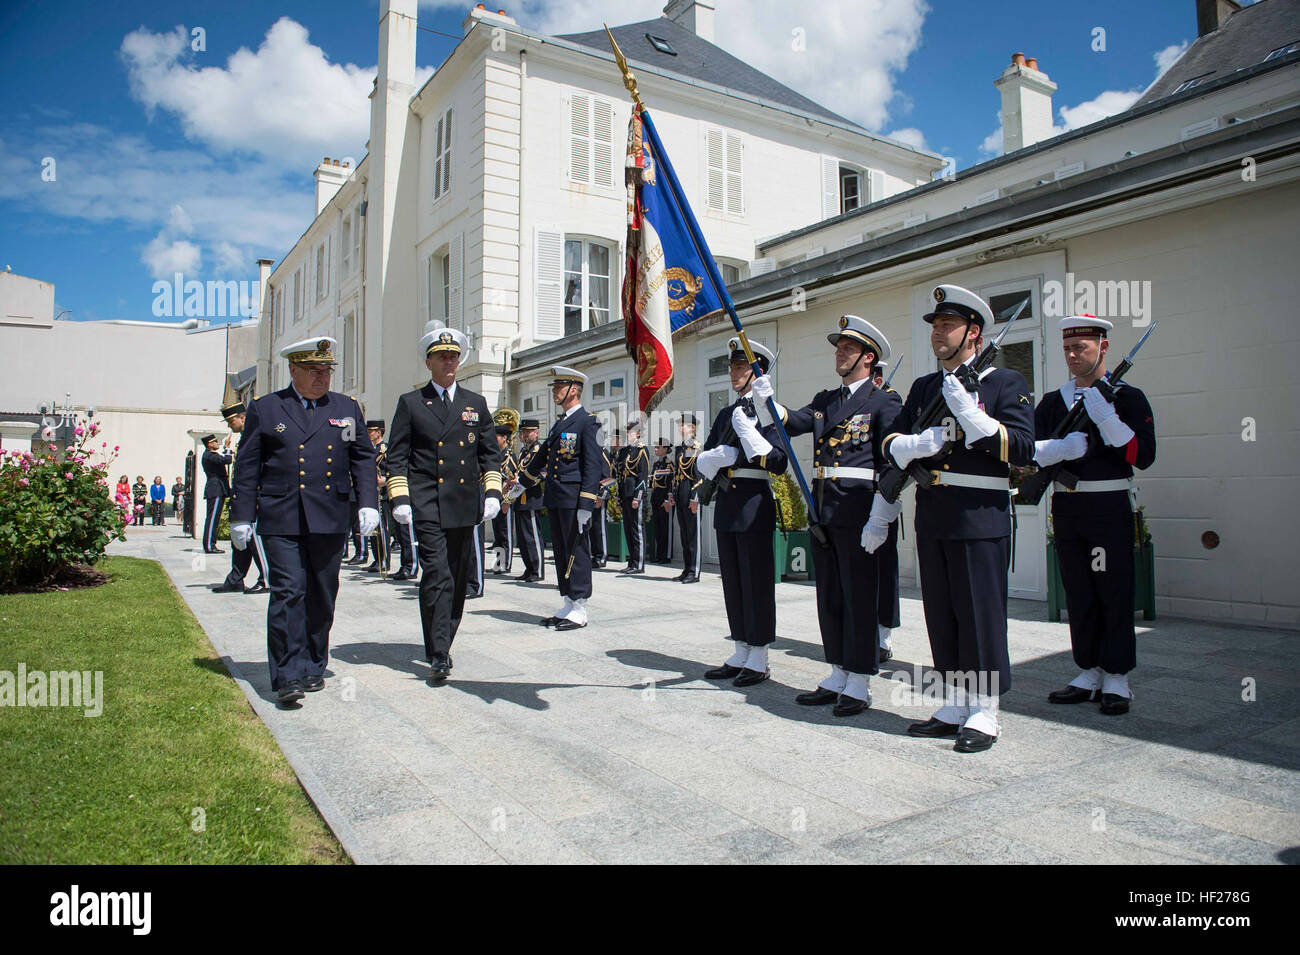 140605-N-WL435-008 CHERBOURG, France (June 5, 2014) Chief of Naval Operations (CNO) Adm. Jonathan Greenert is welcomed - Stock Image